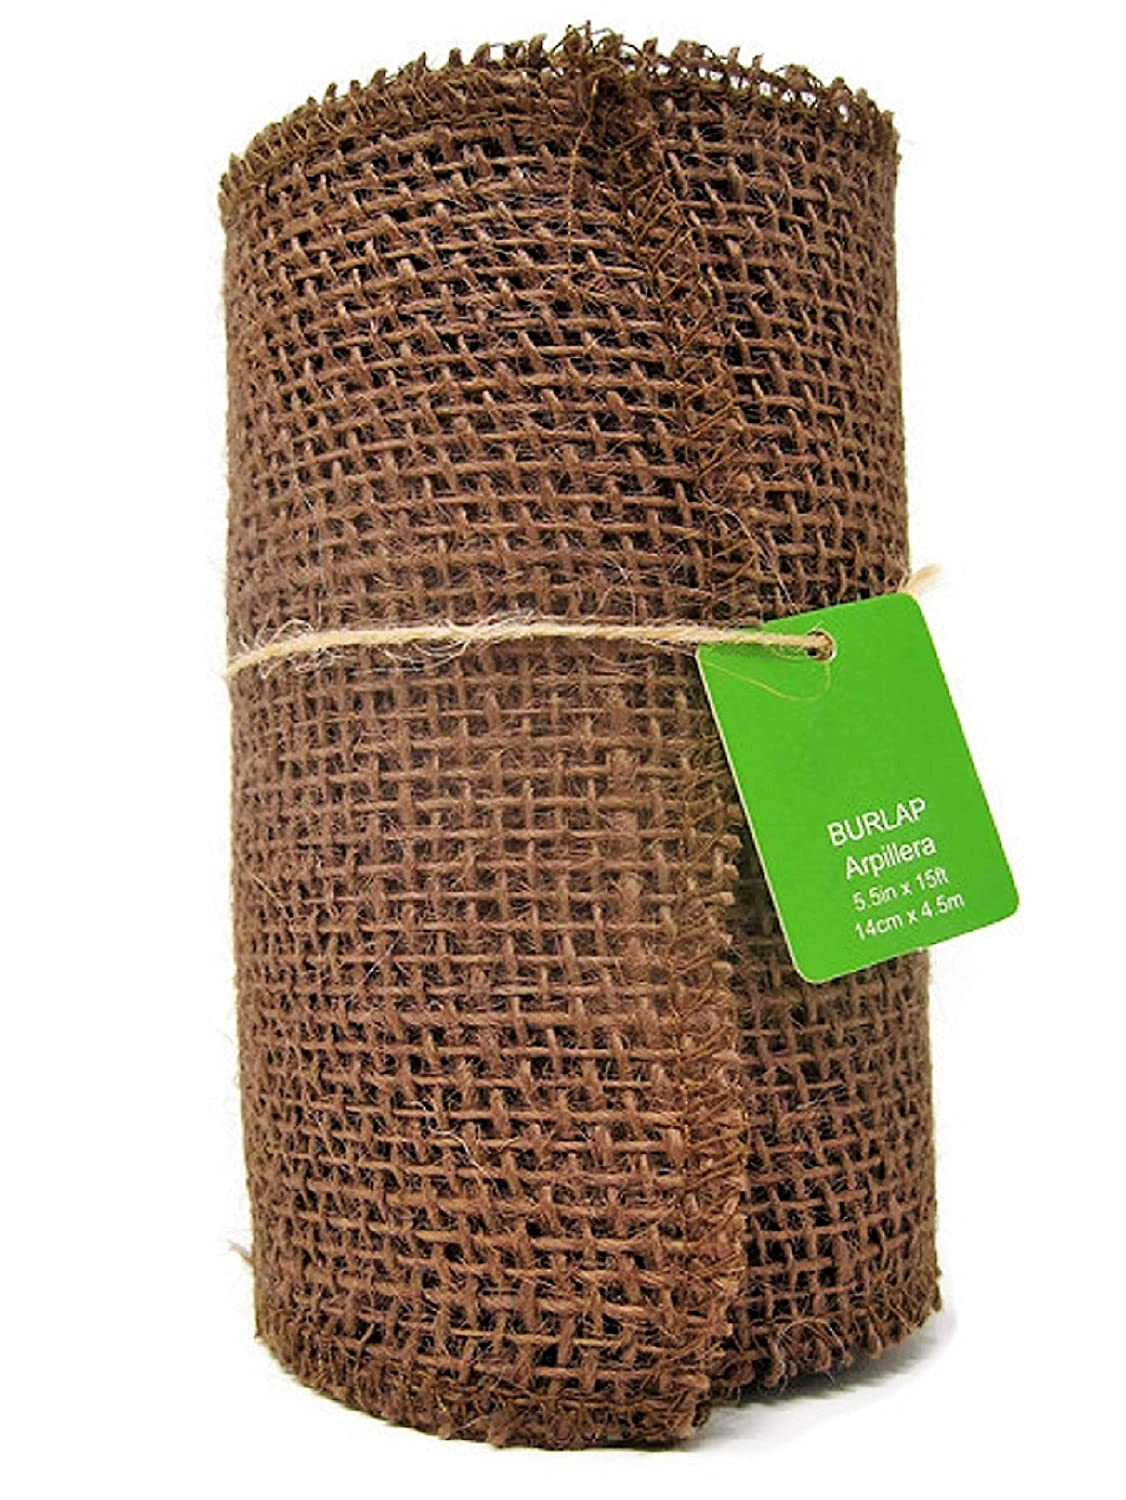 Brown Burlap Roll 5.5 x 15' 6923026103828